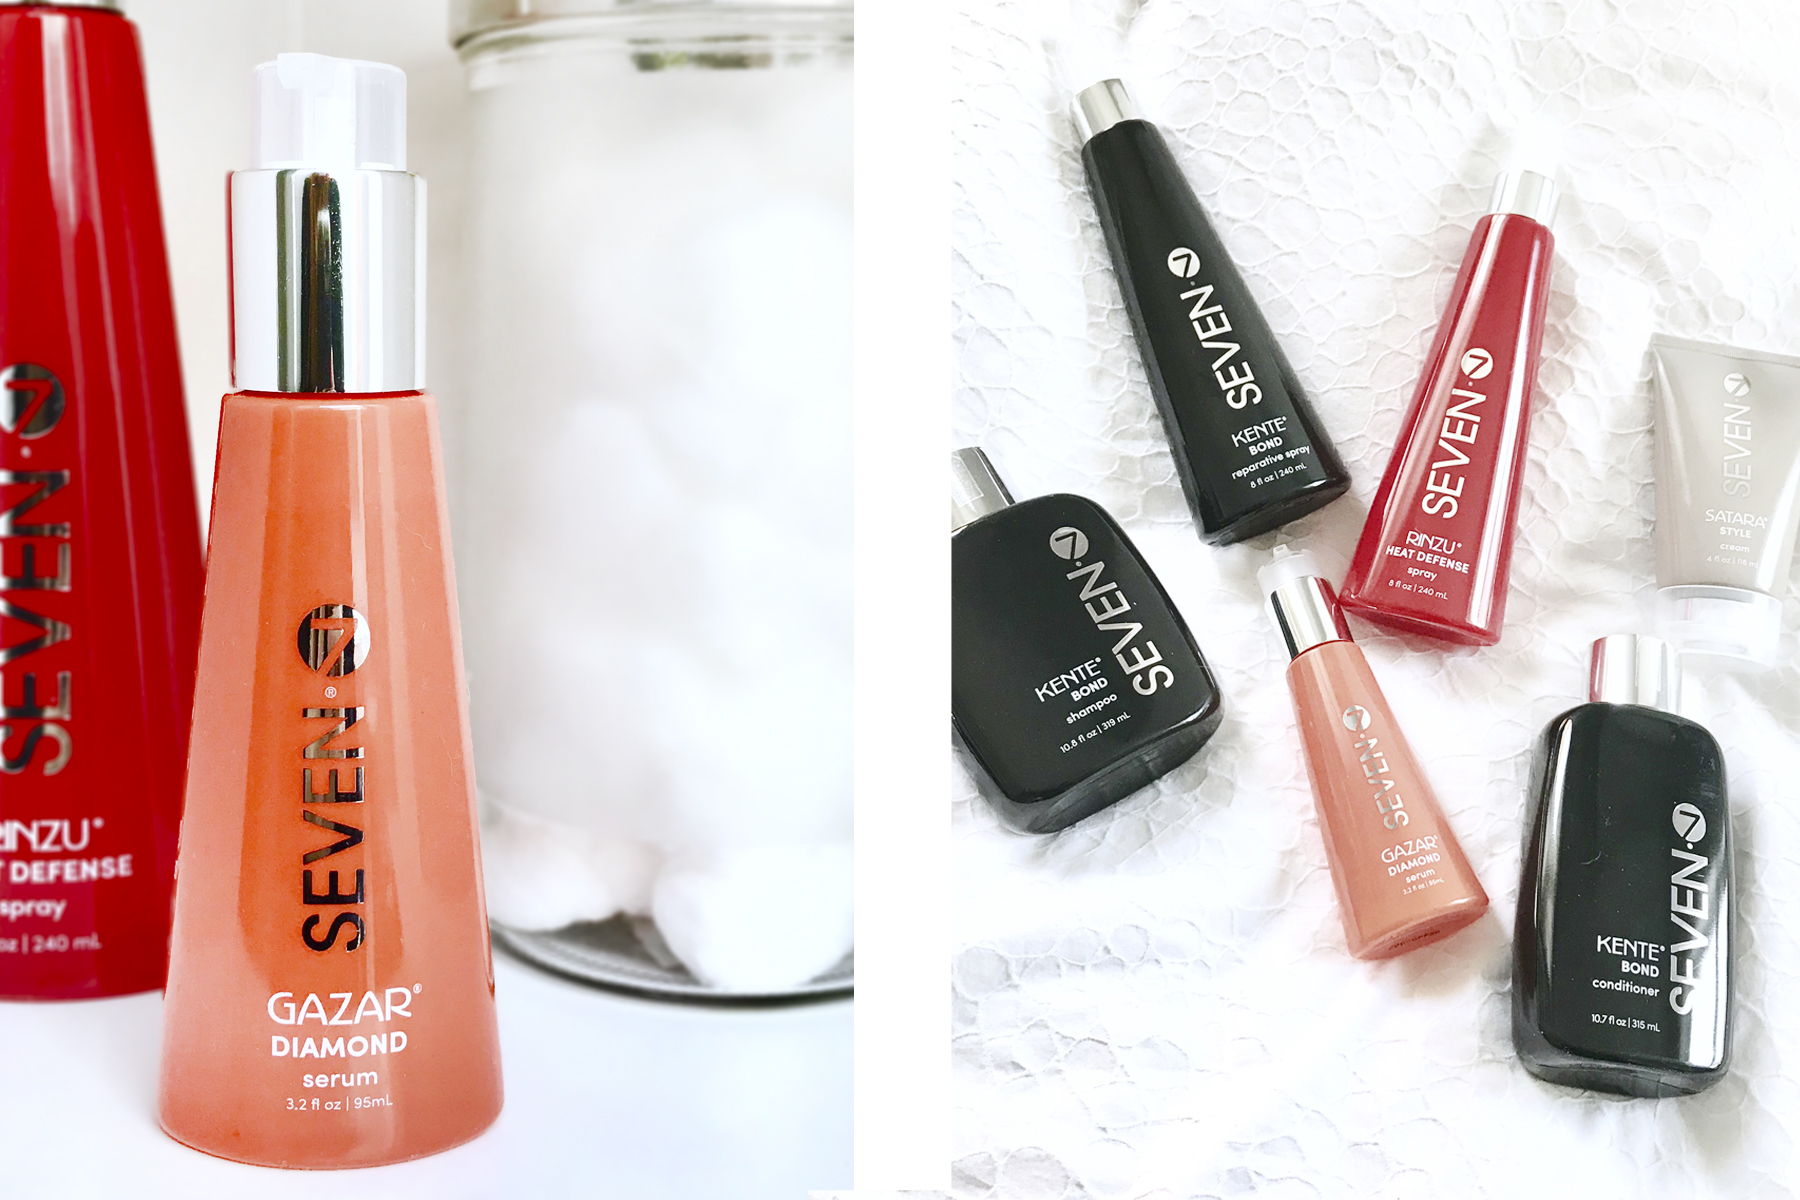 Side by side photo of Seven Hair care's Diamond Serum and a few different products, she's red haute